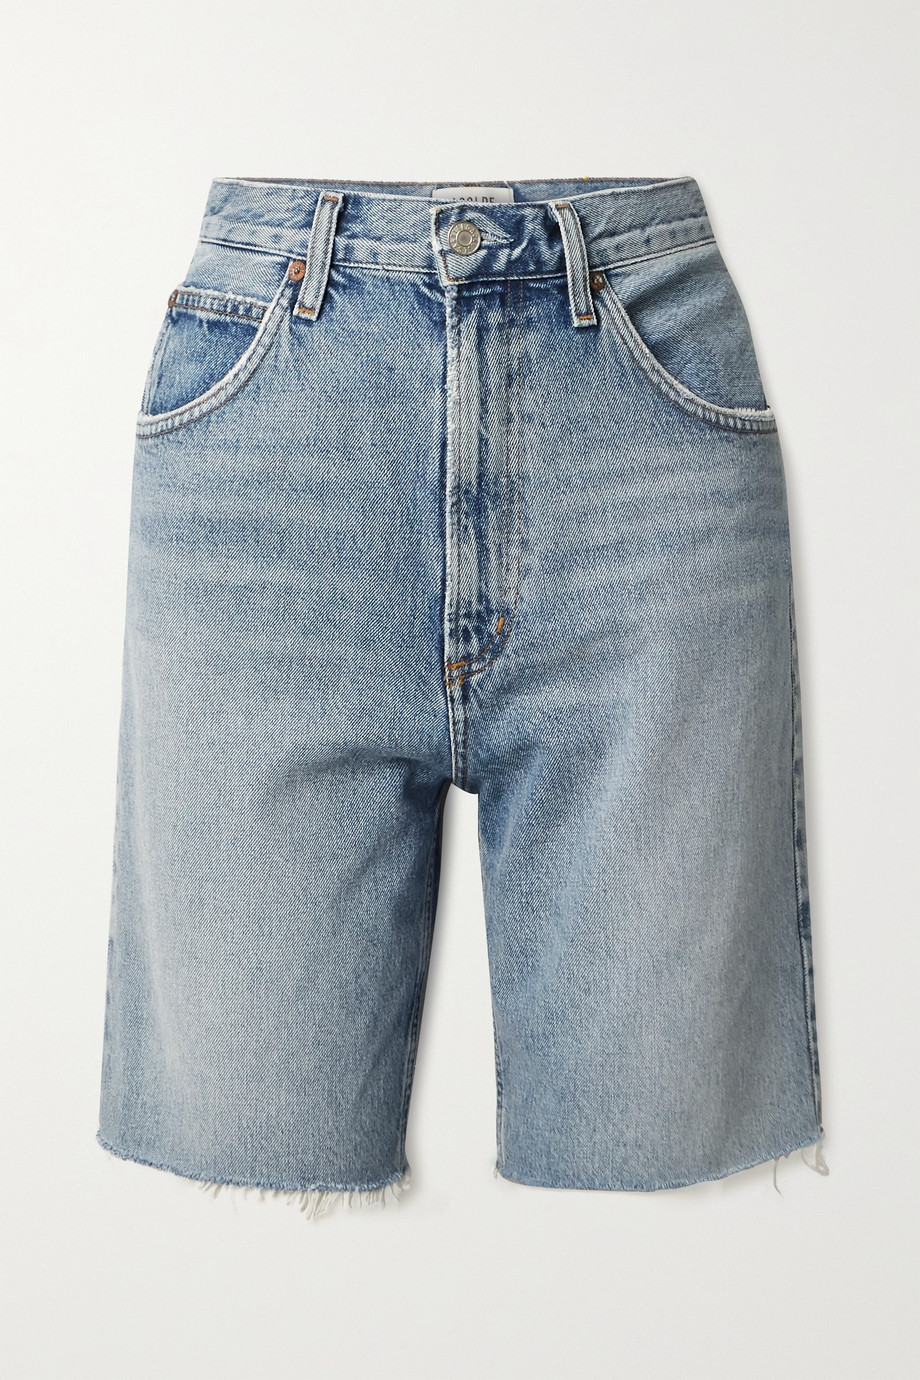 AGOLDE + NET SUSTAIN Pinch Shorts aus Biobaumwoll-Denim in Distressed-Optik